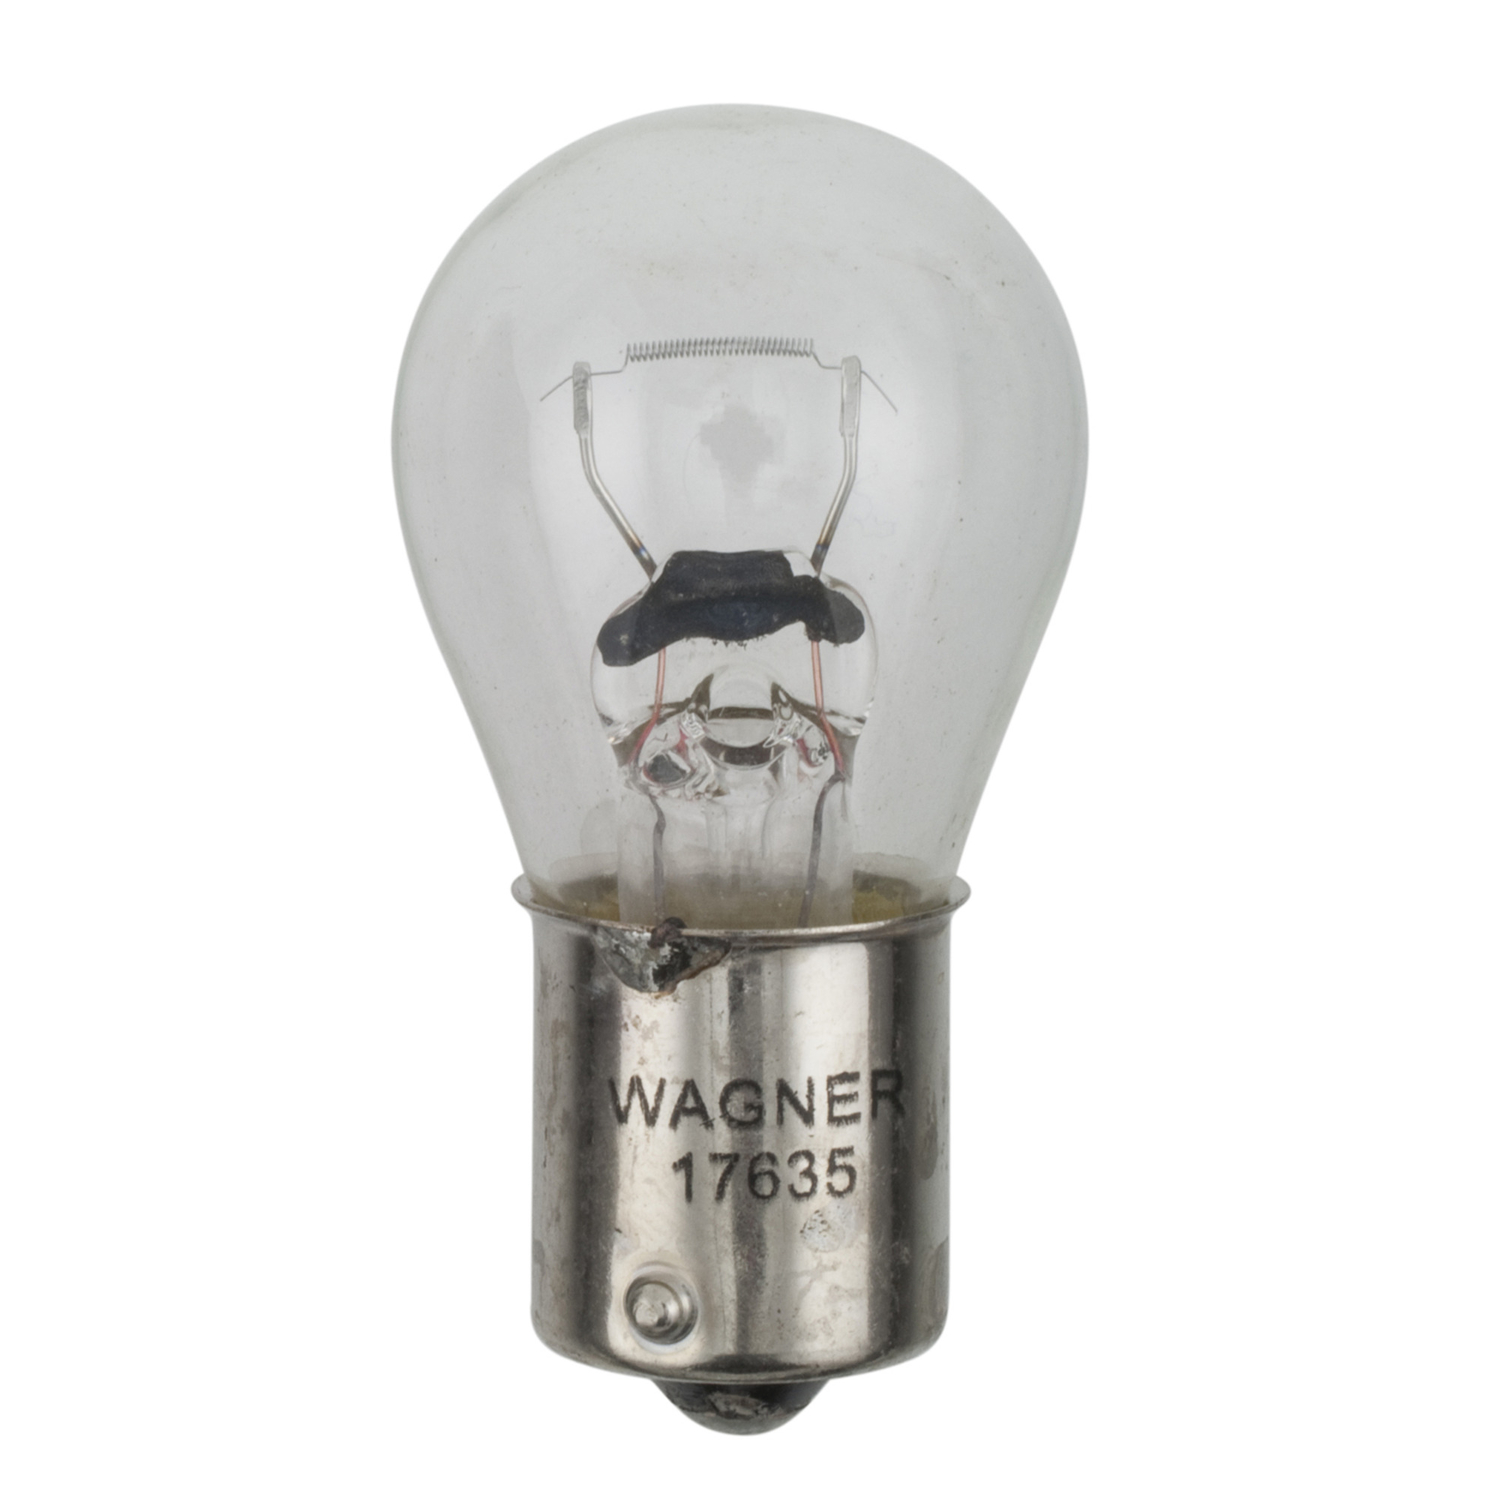 WAGNER LIGHTING - Fog Light Bulb - WLP 17635